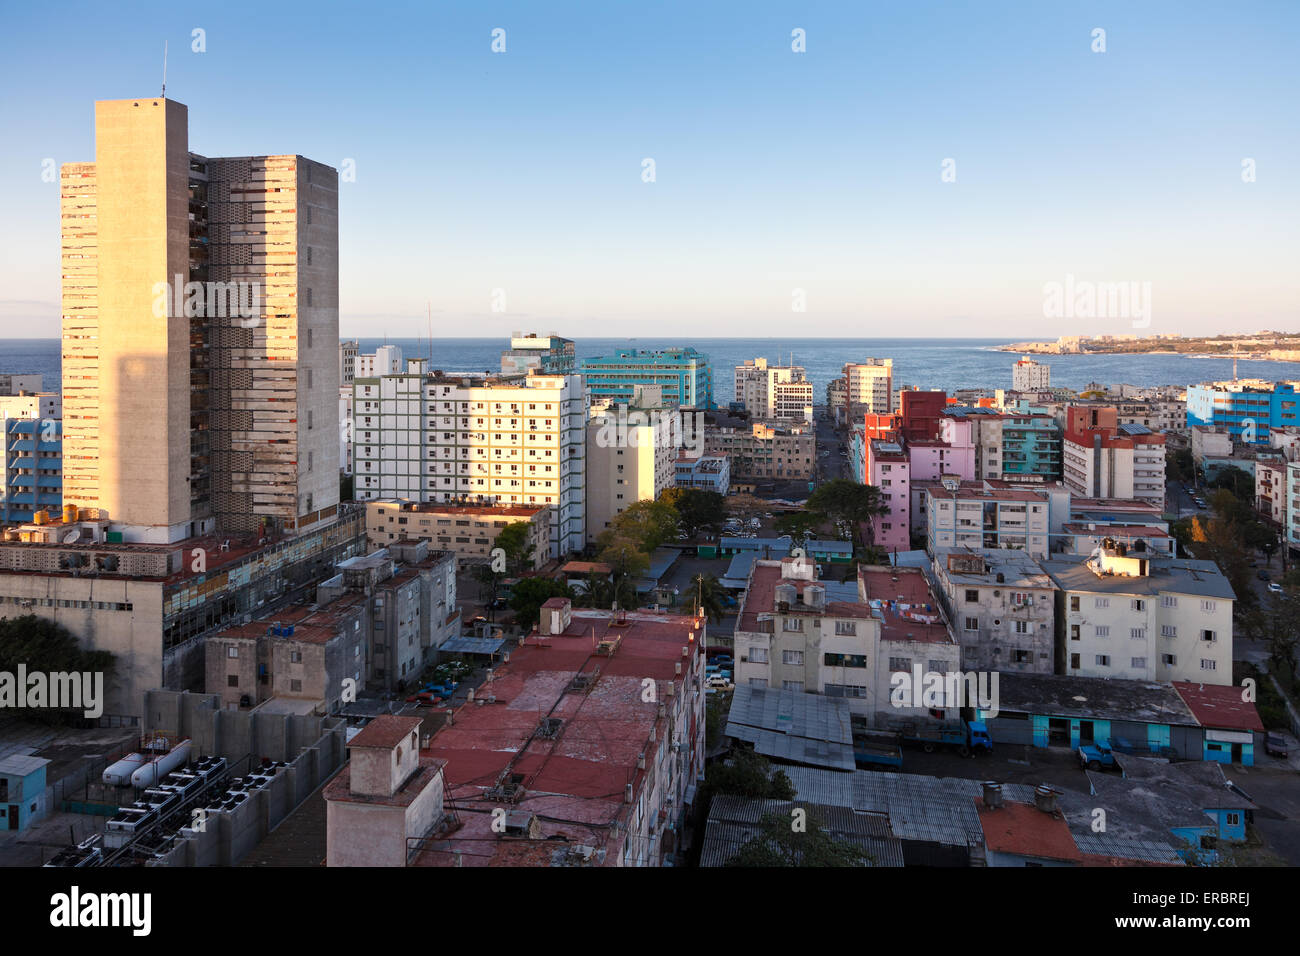 Hotel Tryp Habana Libre 5 Tryp Stock Photos Tryp Stock Images Alamy